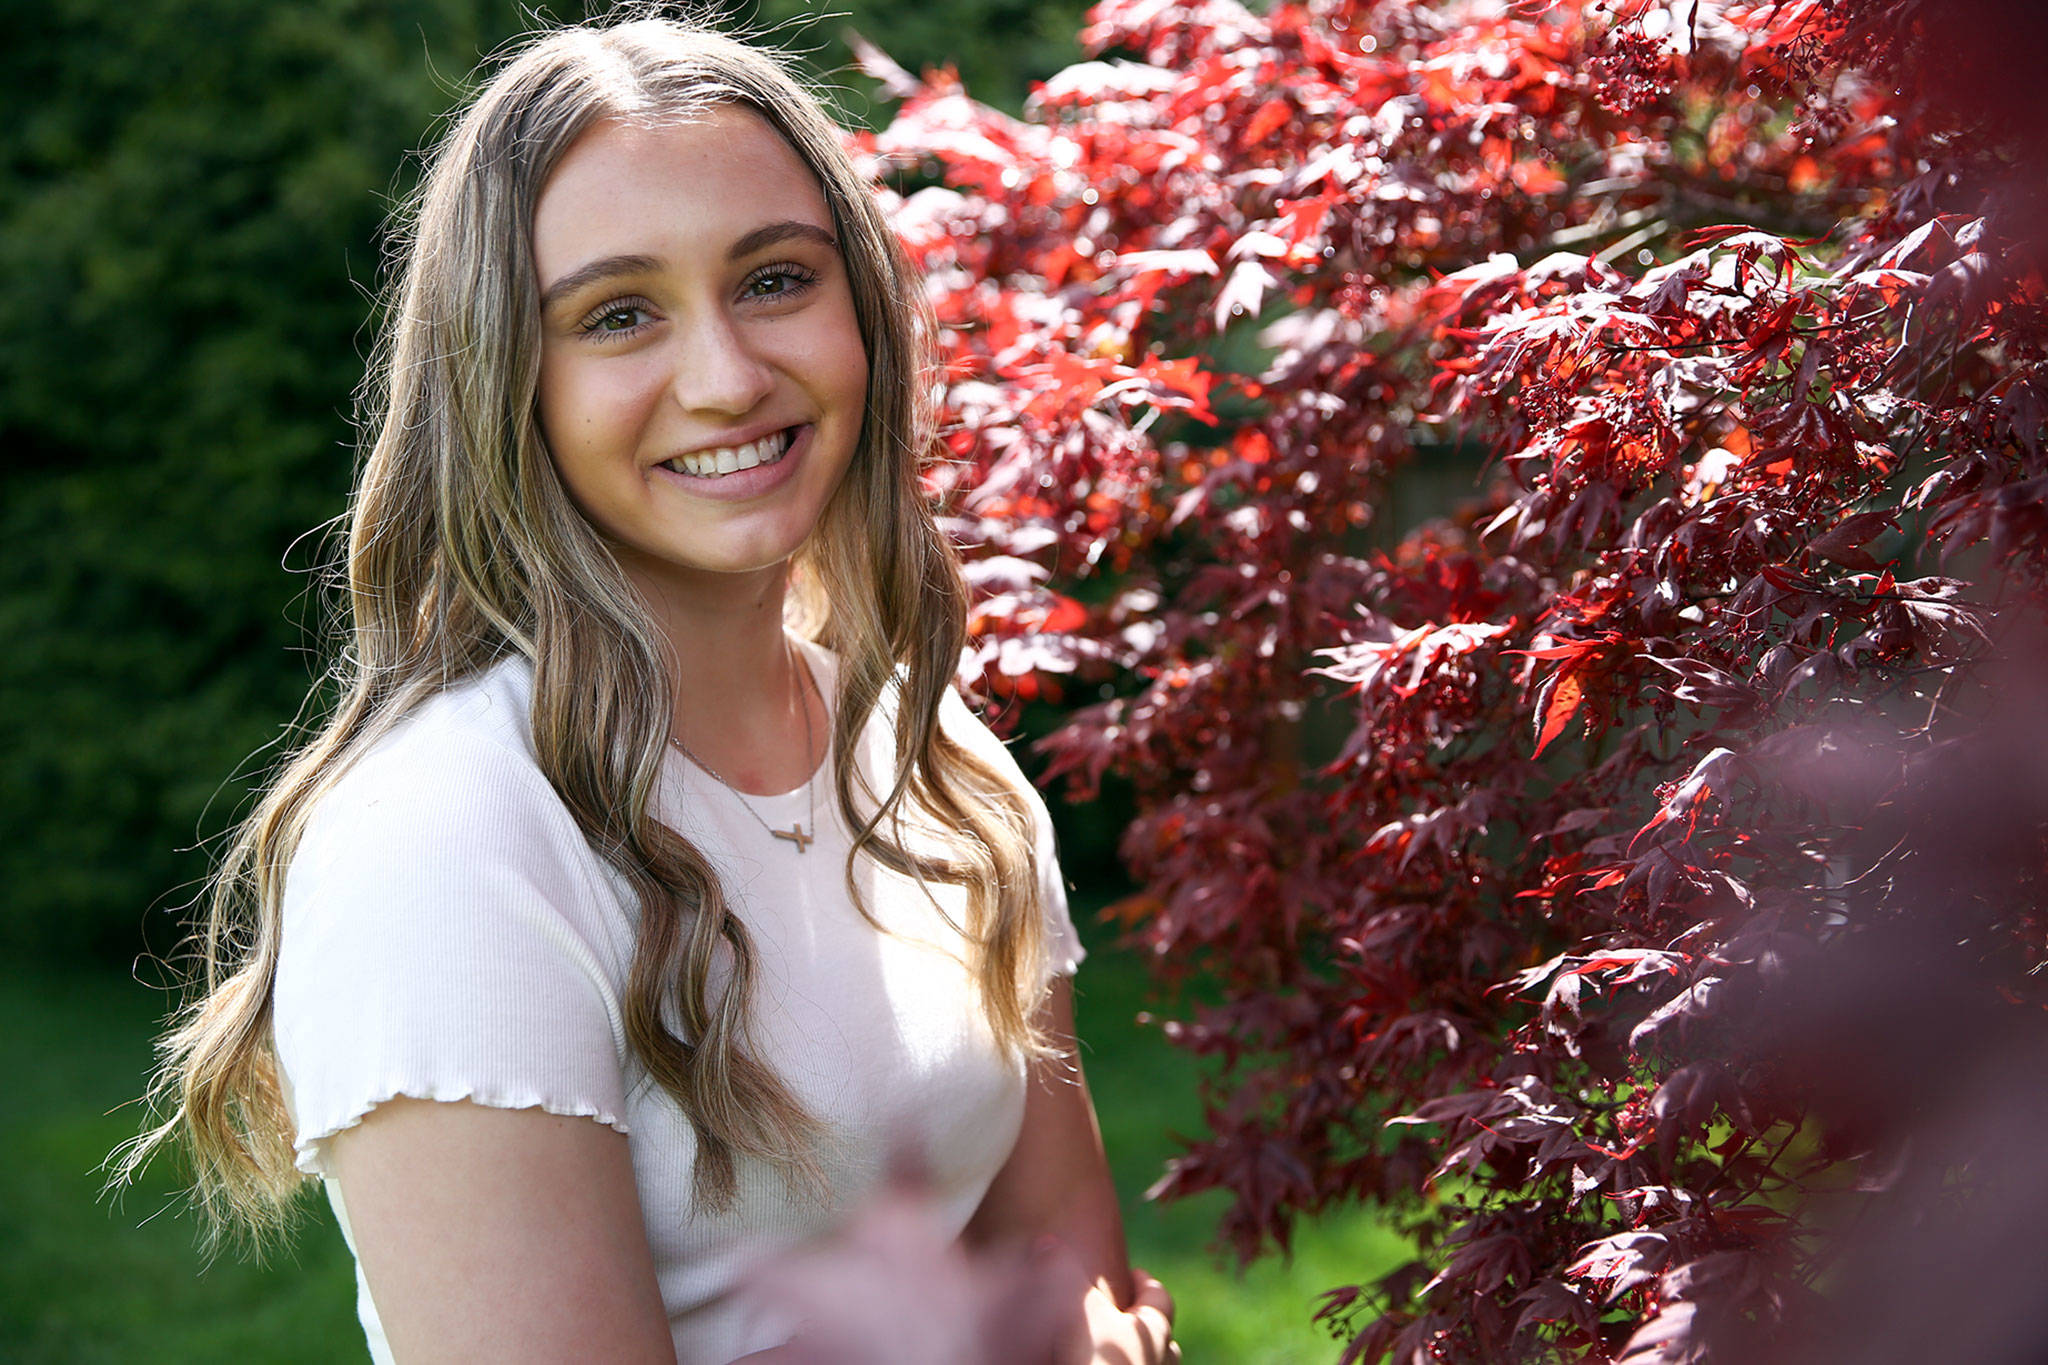 Emily Scott is a Glacier Peak senior, softball player and valedictorian. She plans to attend the University of Washington. (Kevin Clark / The Herald)